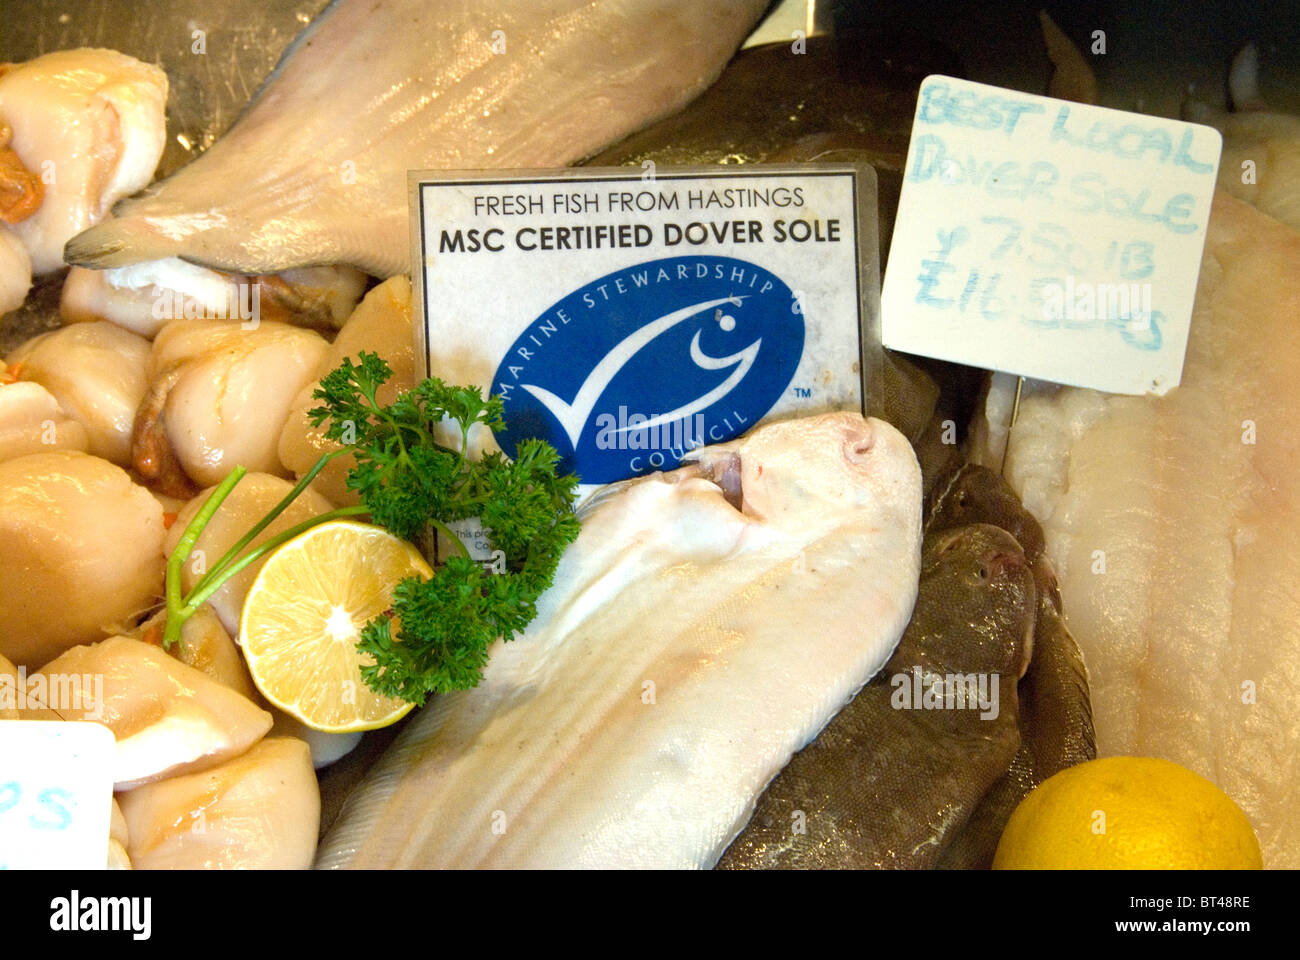 Fresh Hastings fish Marine Stewardship Council MSC certified sustainable Dover sole on sale at Rock-a-Nore Fisheries - Stock Image